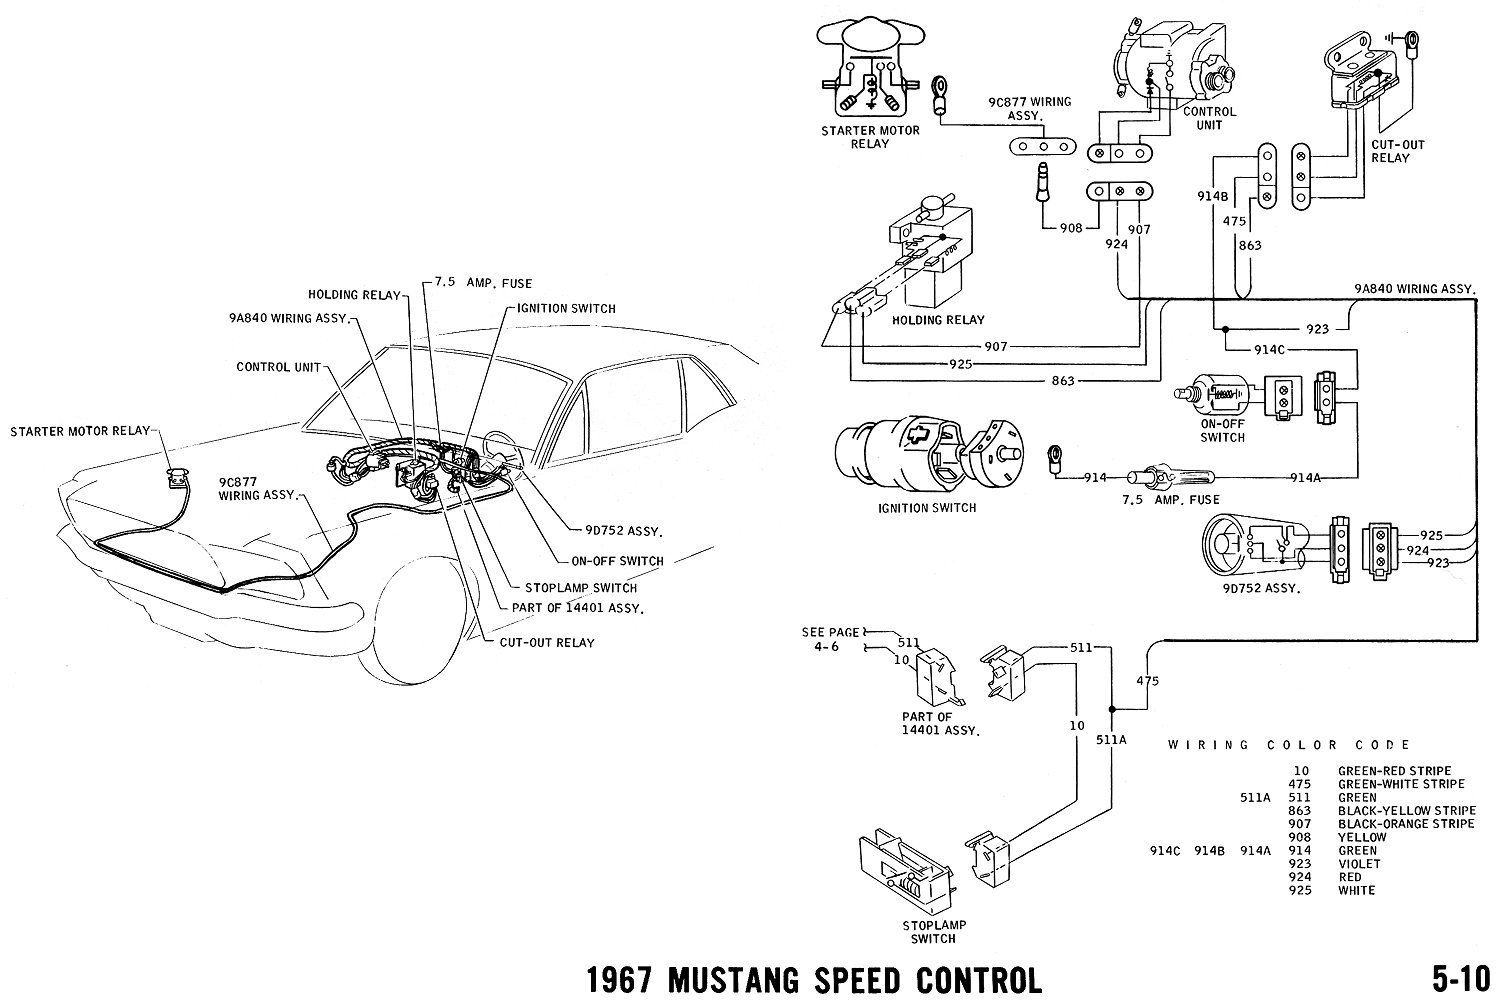 1967 Mustang Wiring And Vacuum Diagrams Average Joe Restoration Duct Fan Speed Control Diagram Pictorial Schematic